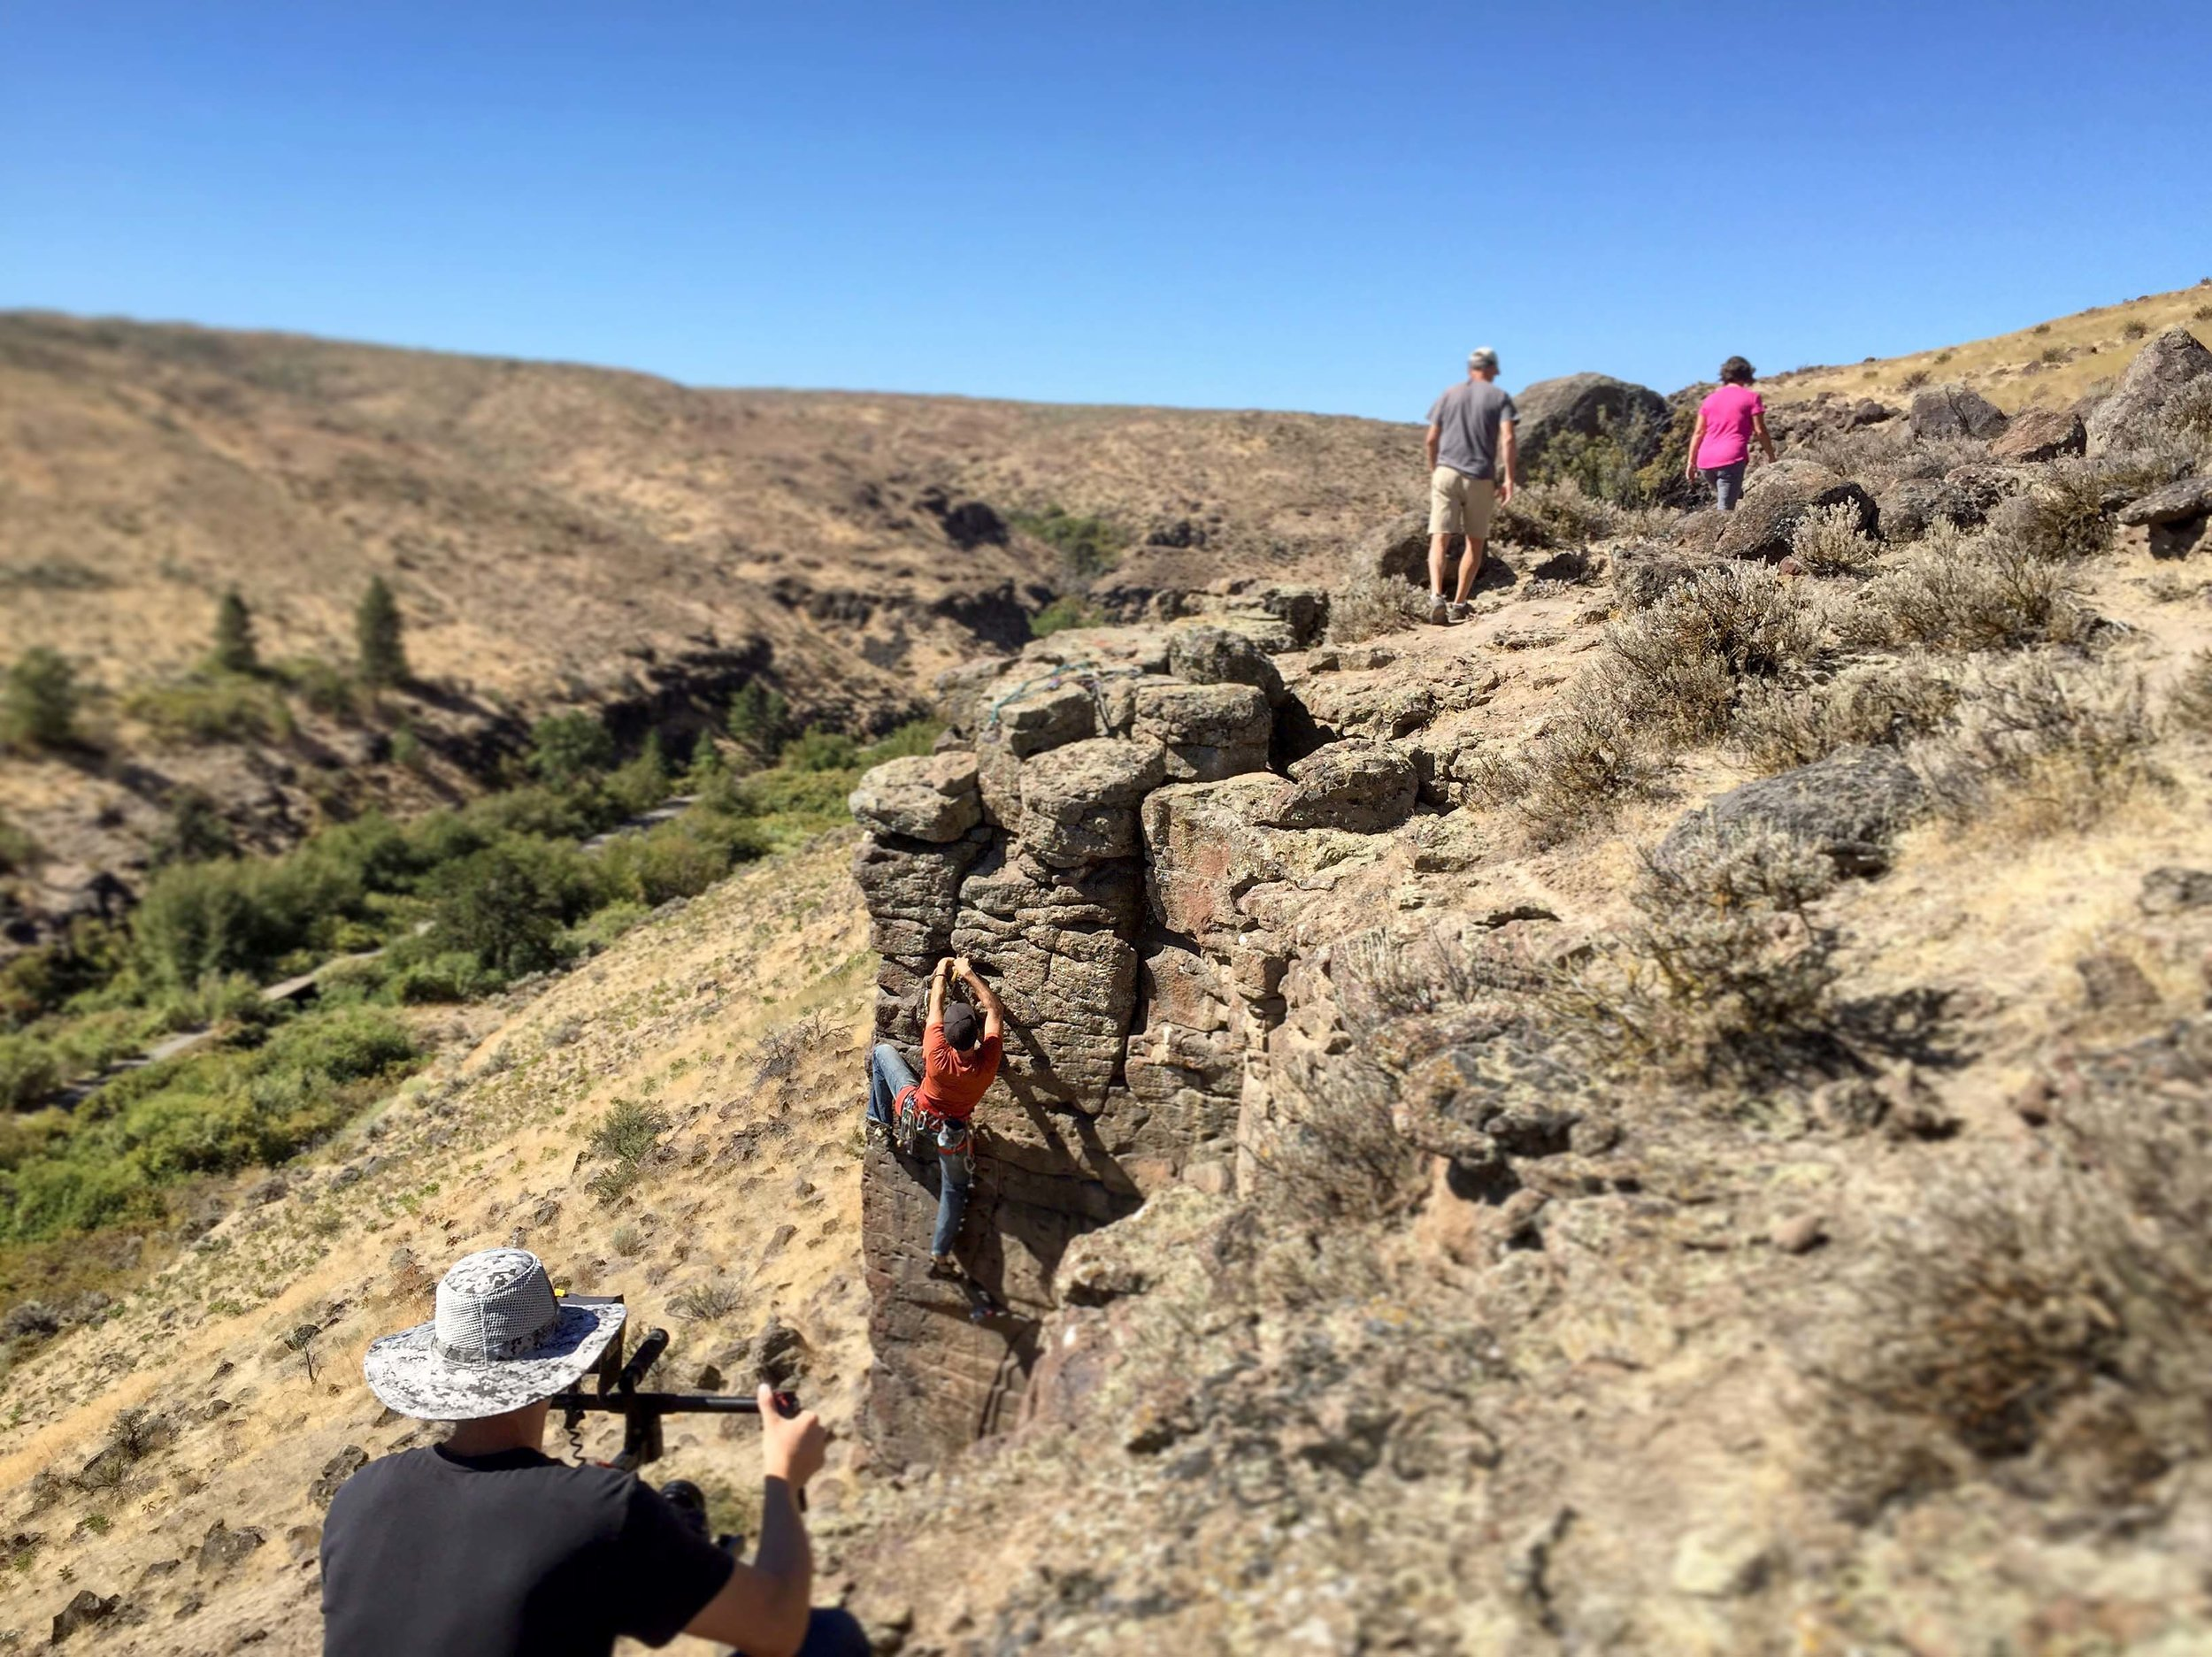 Cowiche Canyon Rock Climber Hiking Yakima